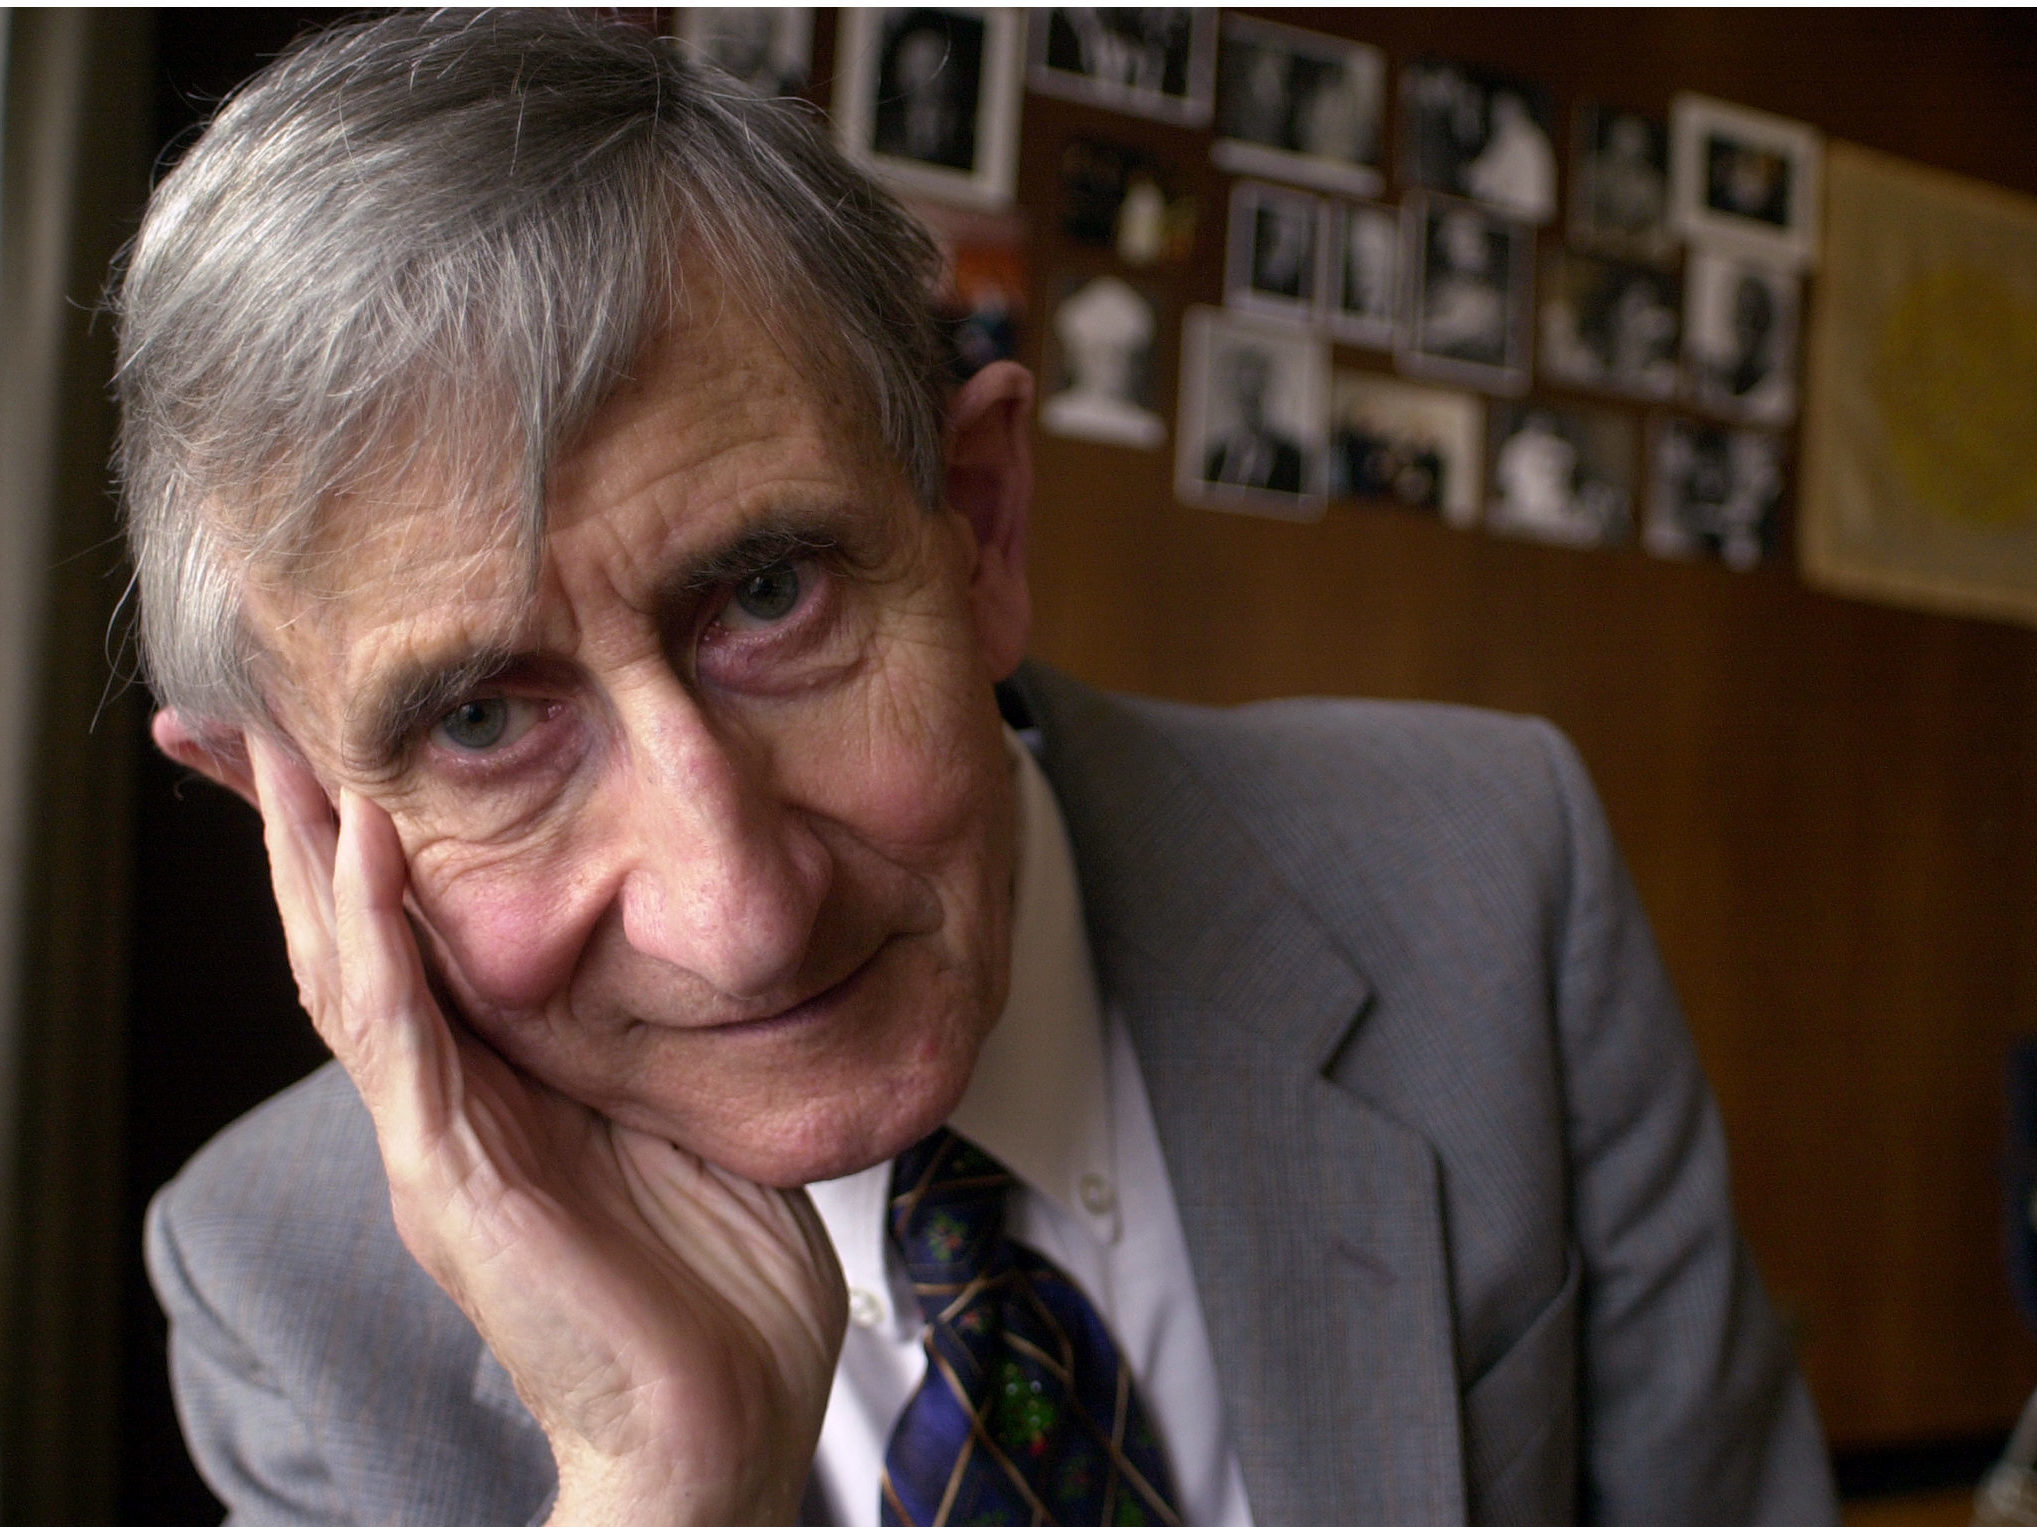 Physicist And Iconoclastic Thinker Freeman Dyson Dies At 96